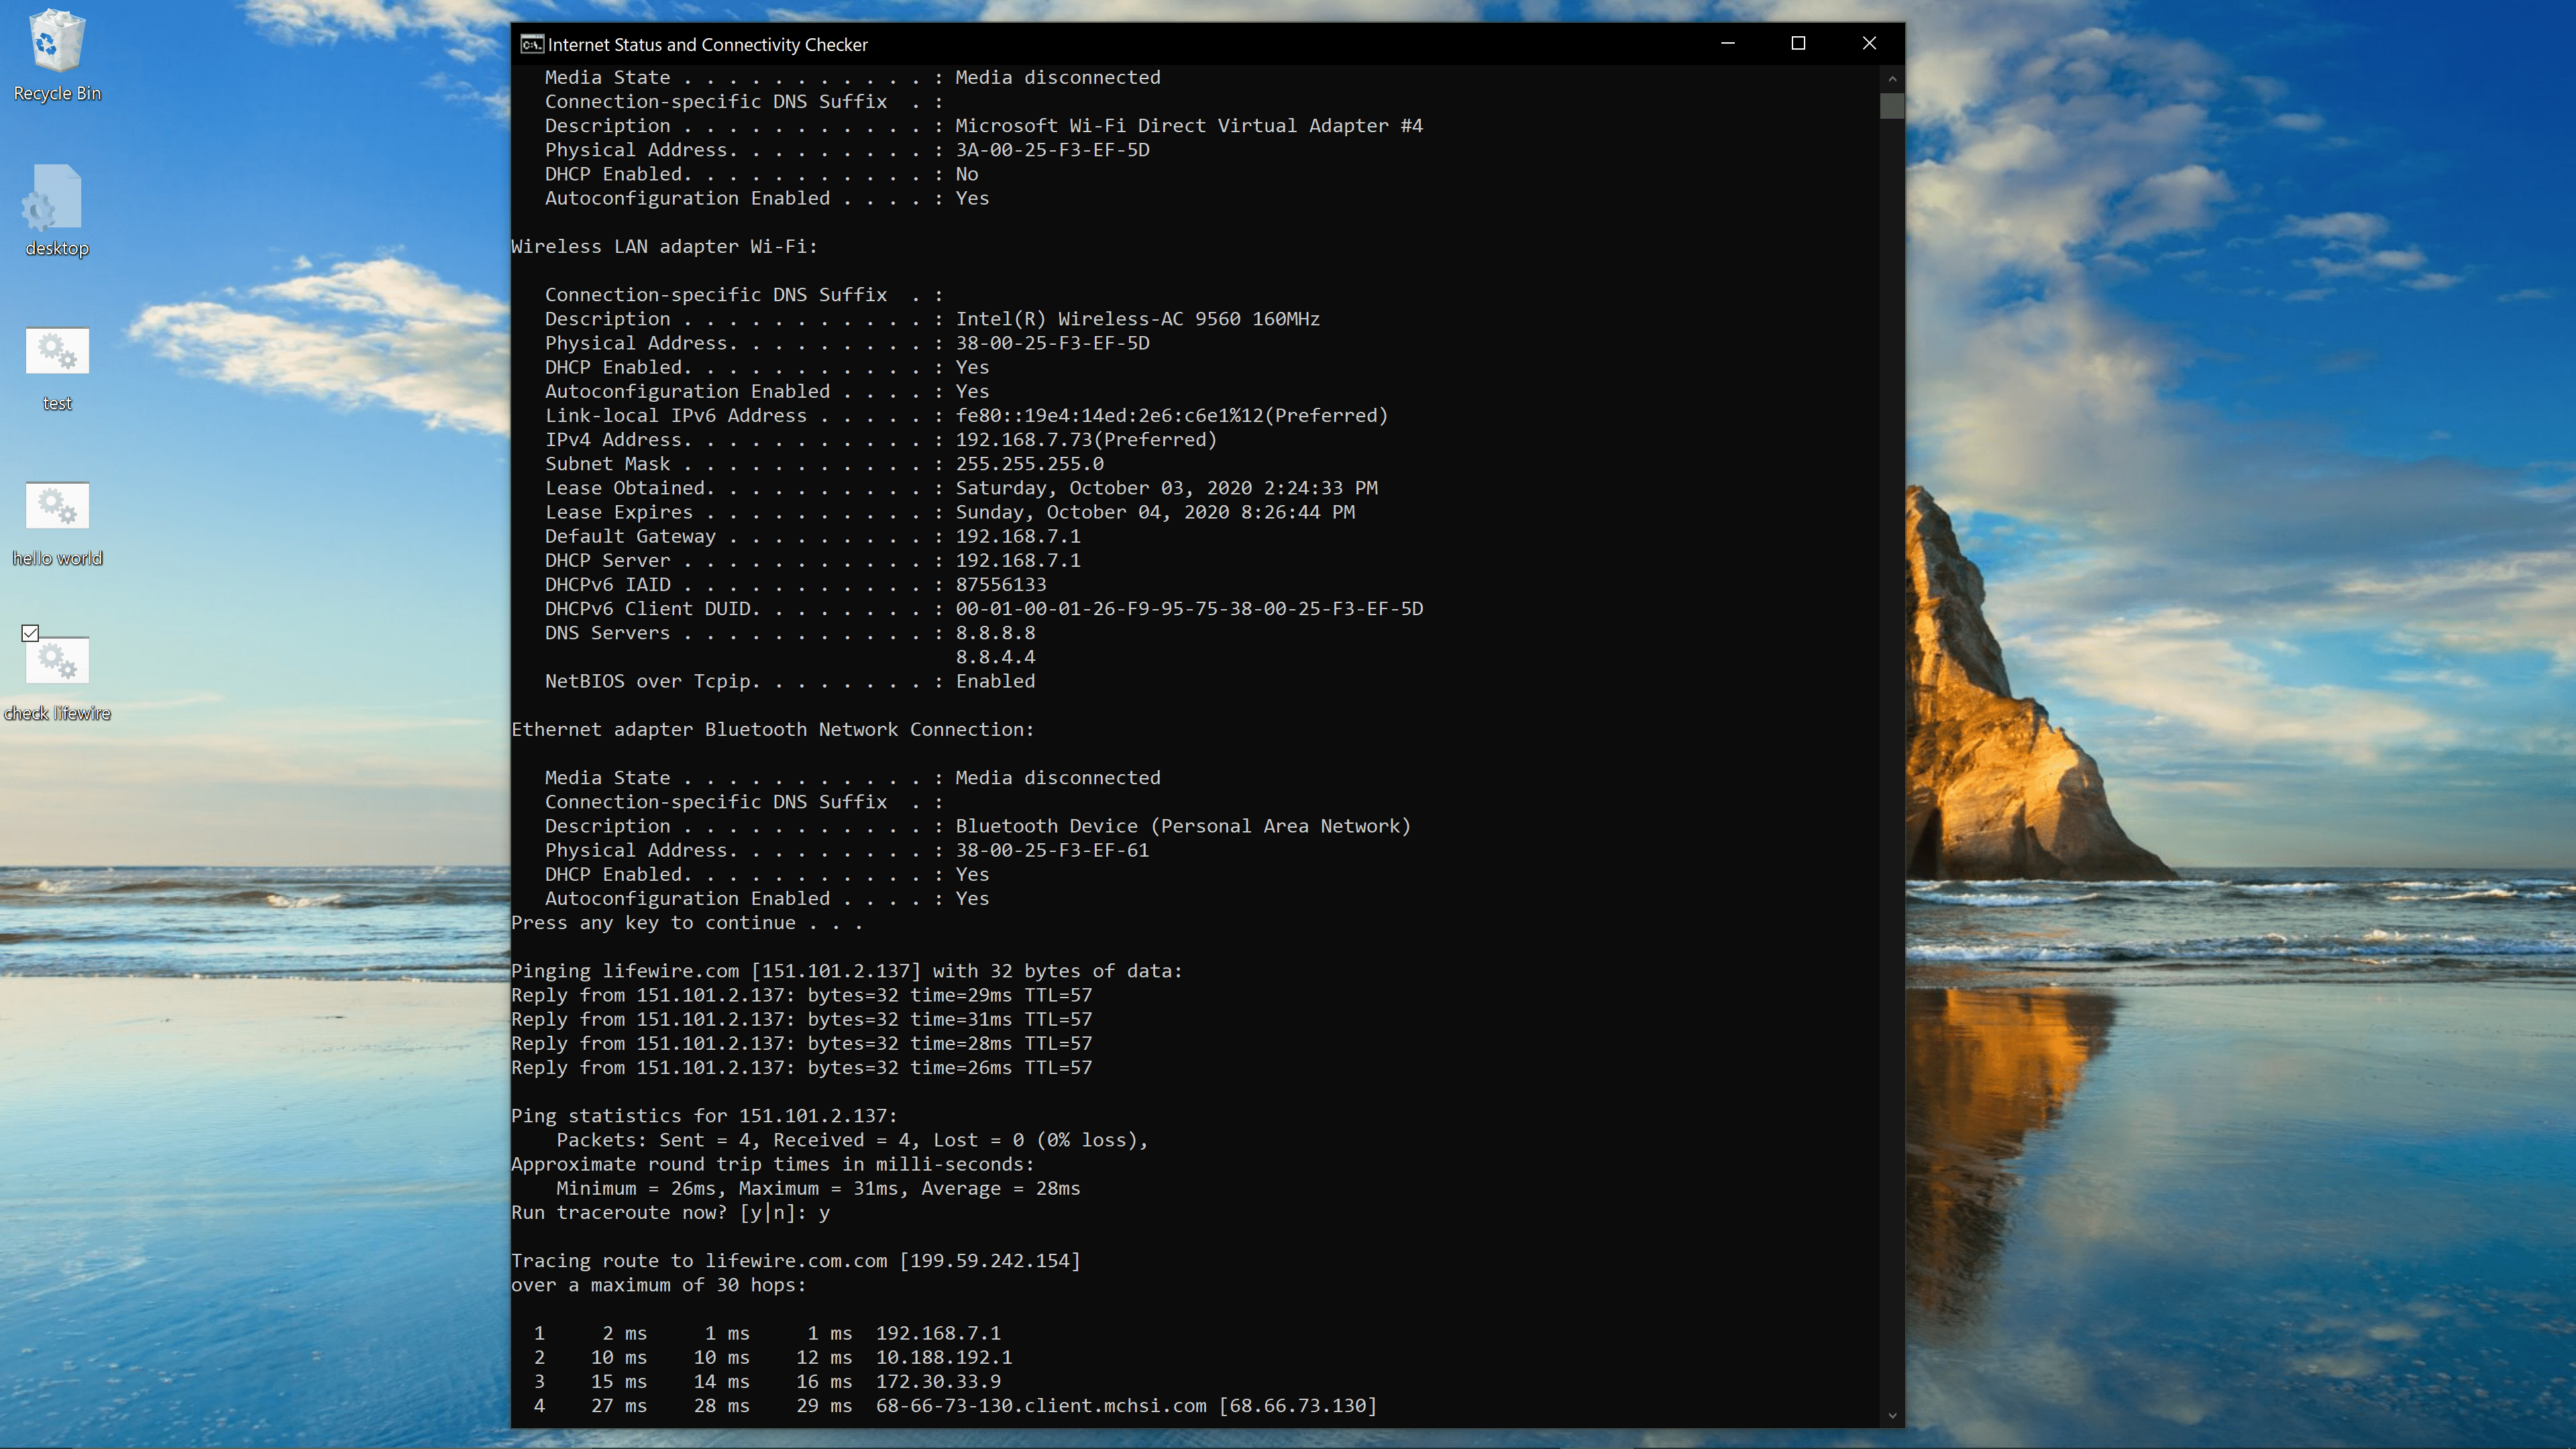 A batch file example output.